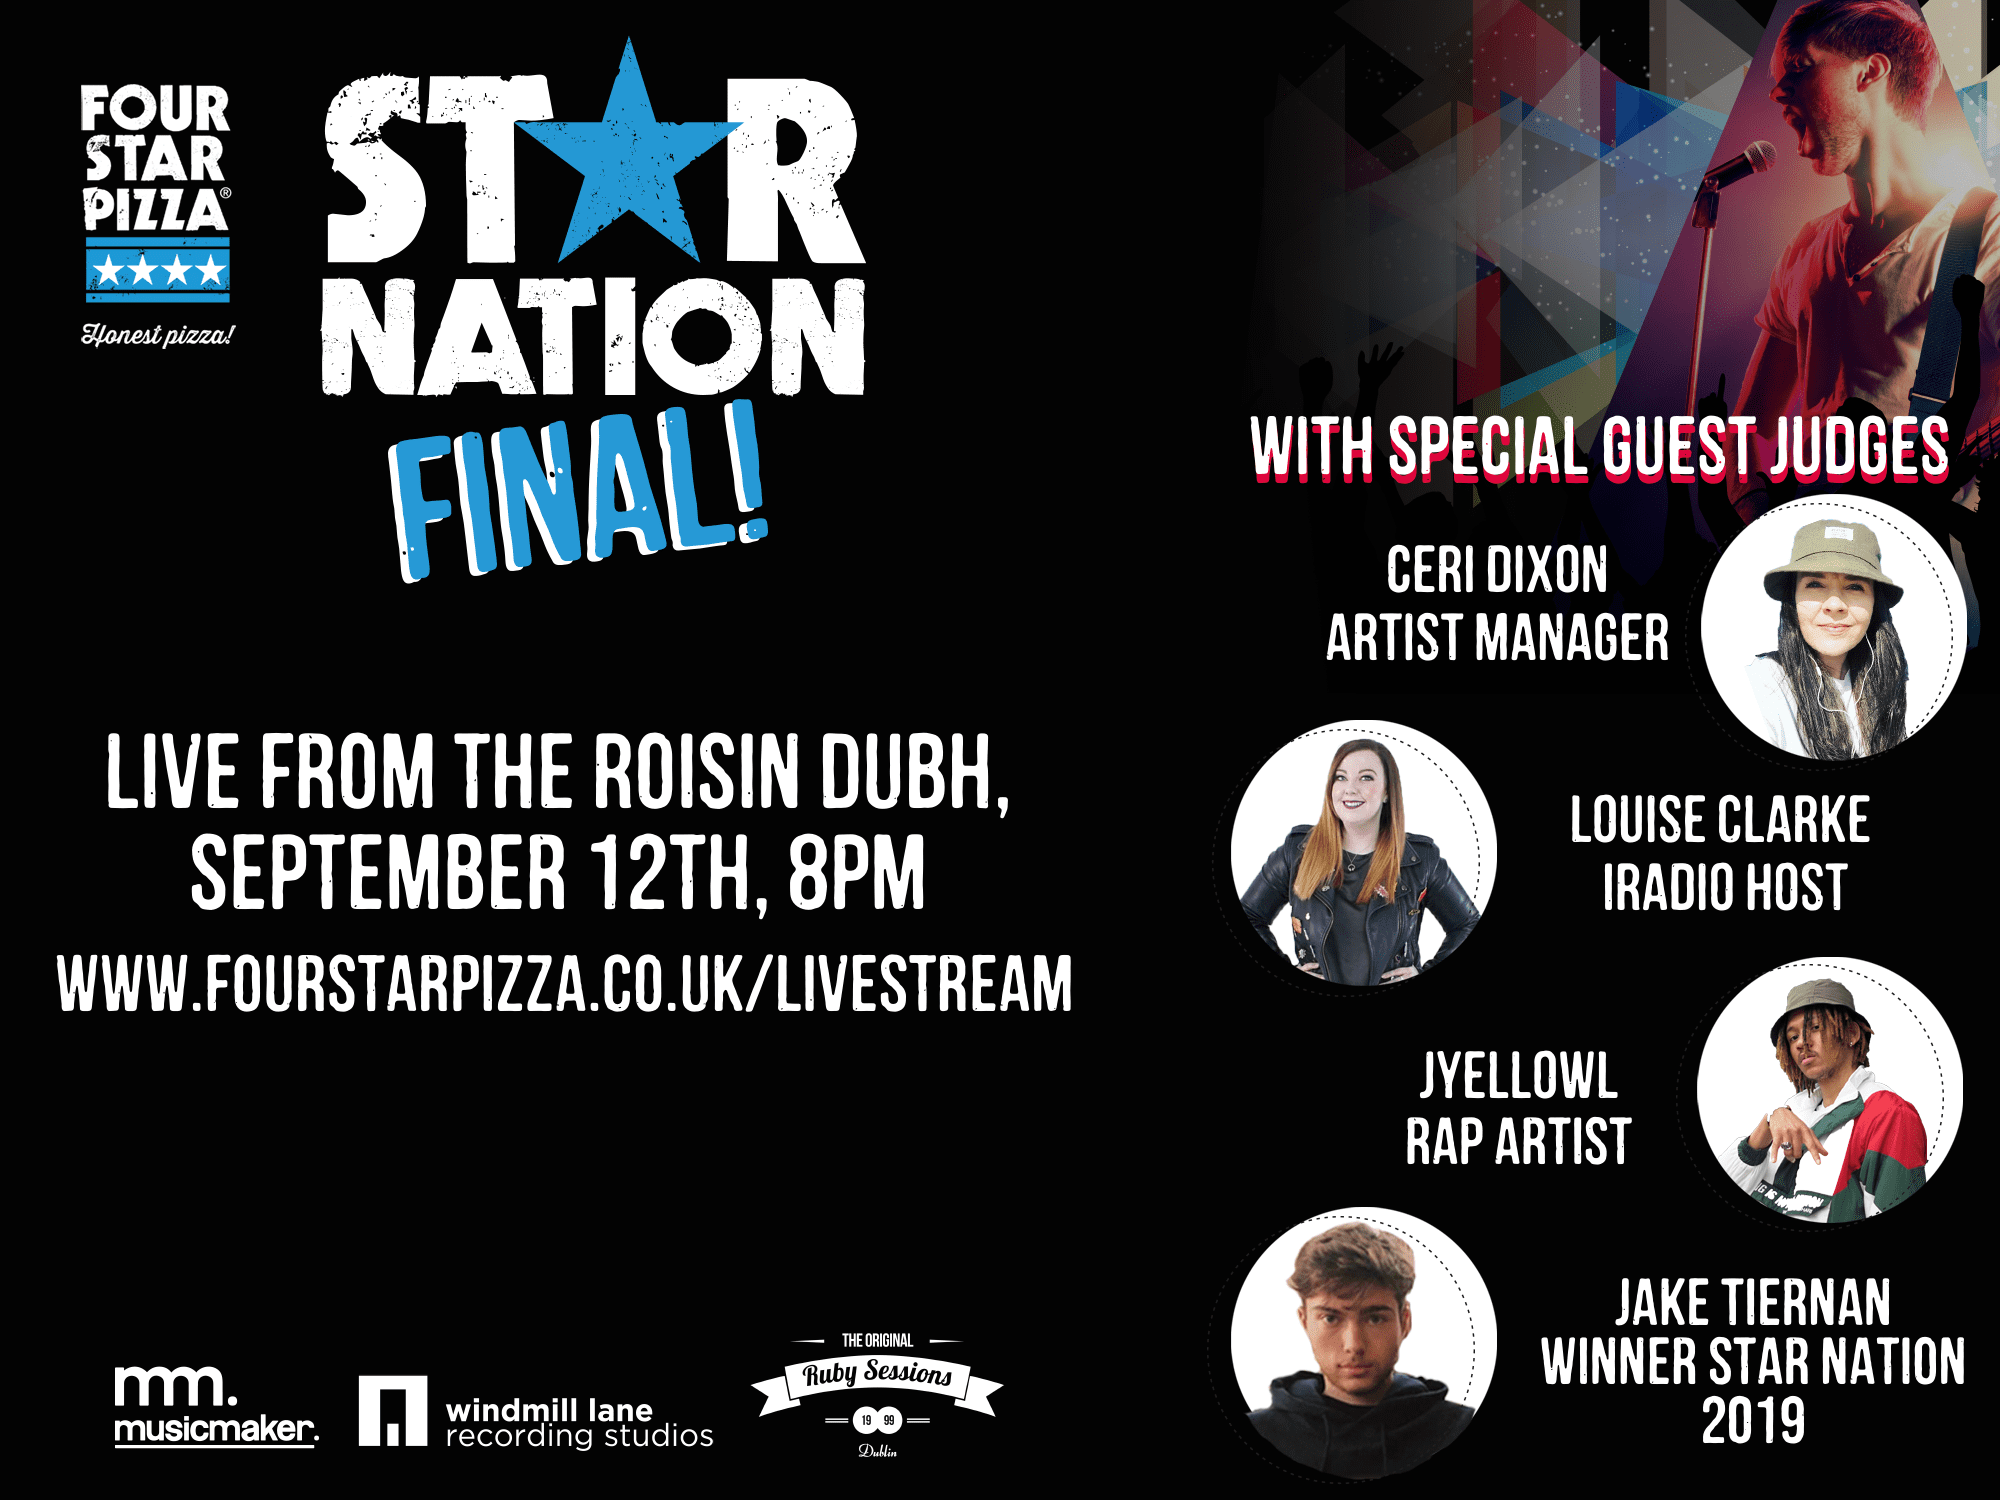 Star Nation Final To Go Ahead Via Live Online Stream Businessfirst